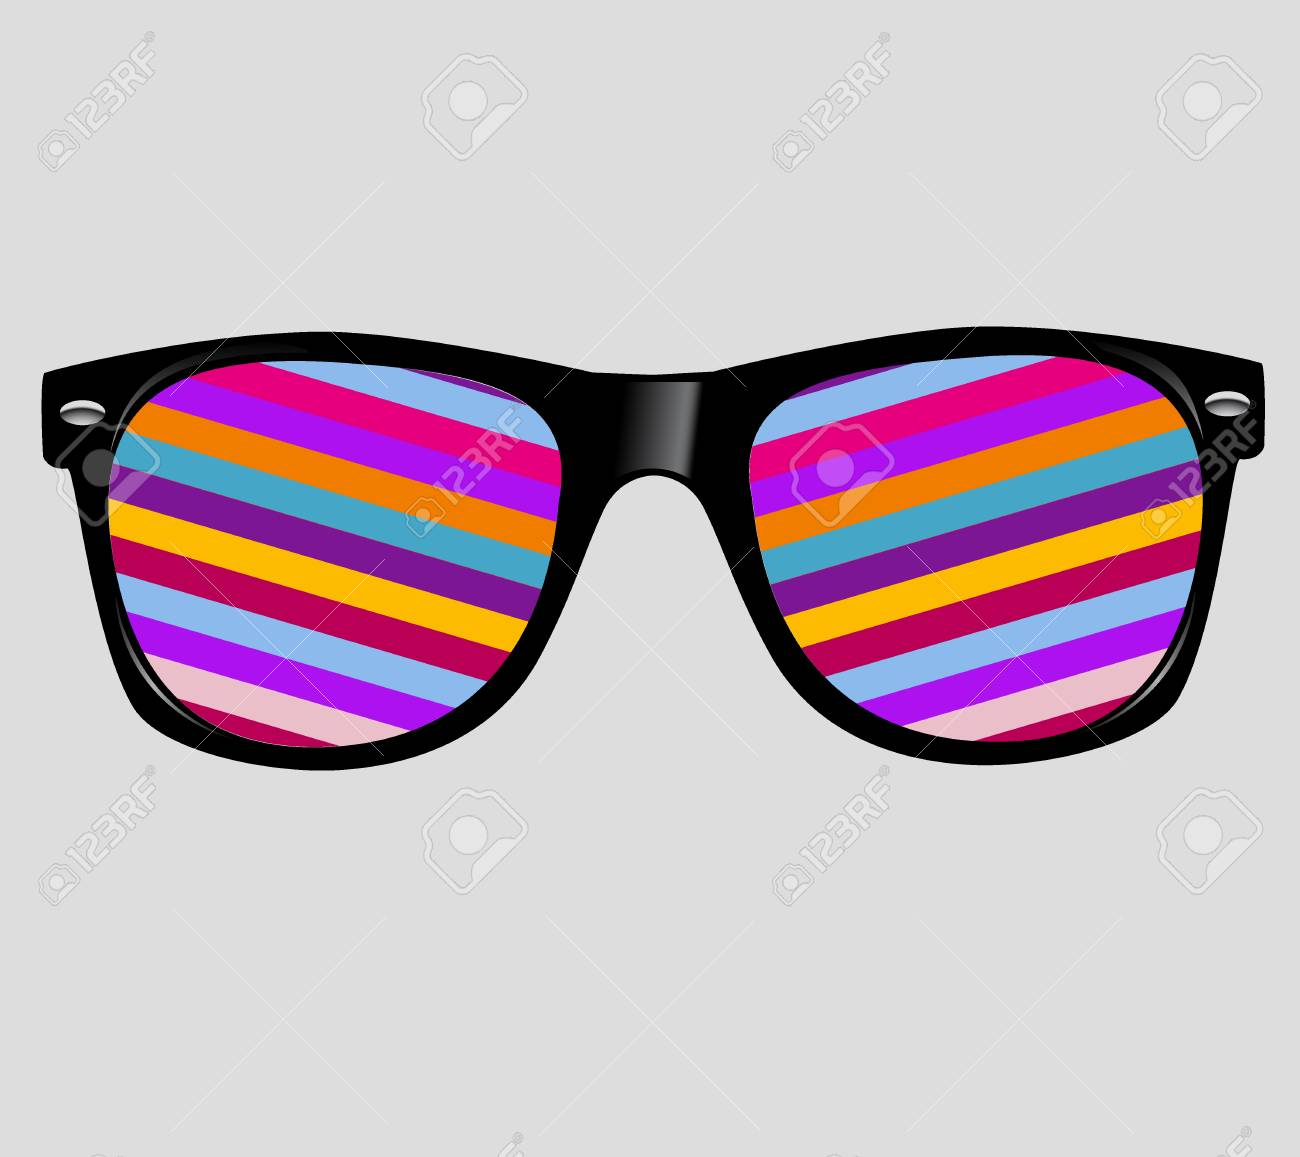 sunglasses with abstract geometric. - 31104755